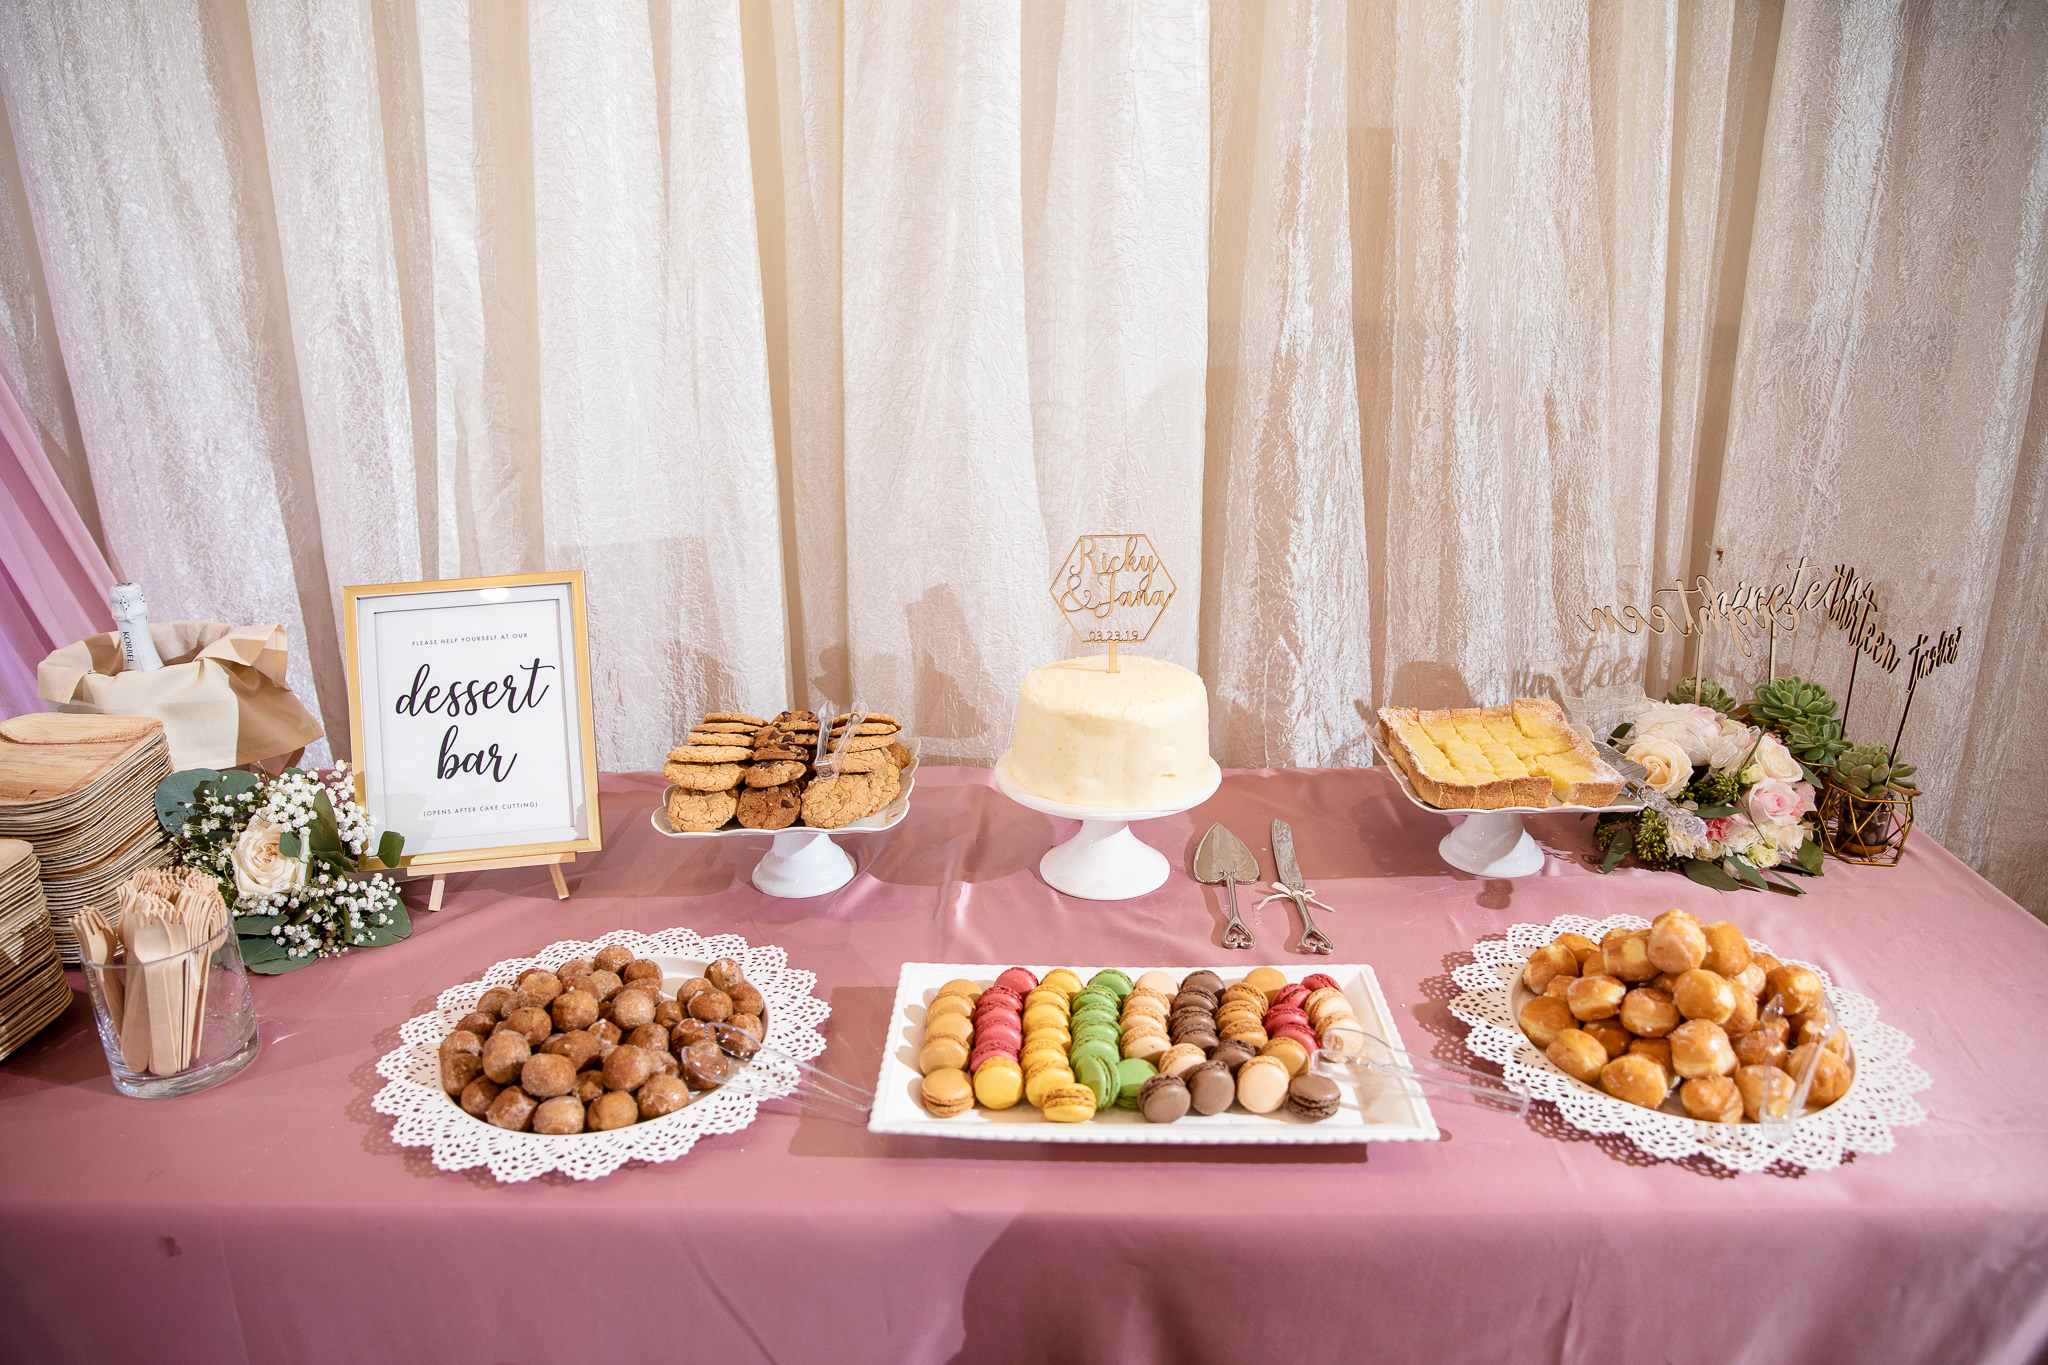 Dessert bars at wedding reception give guests a better variety of dessert options. The hard part was keeping guests from spoiling their appetites before dinner started, lol.